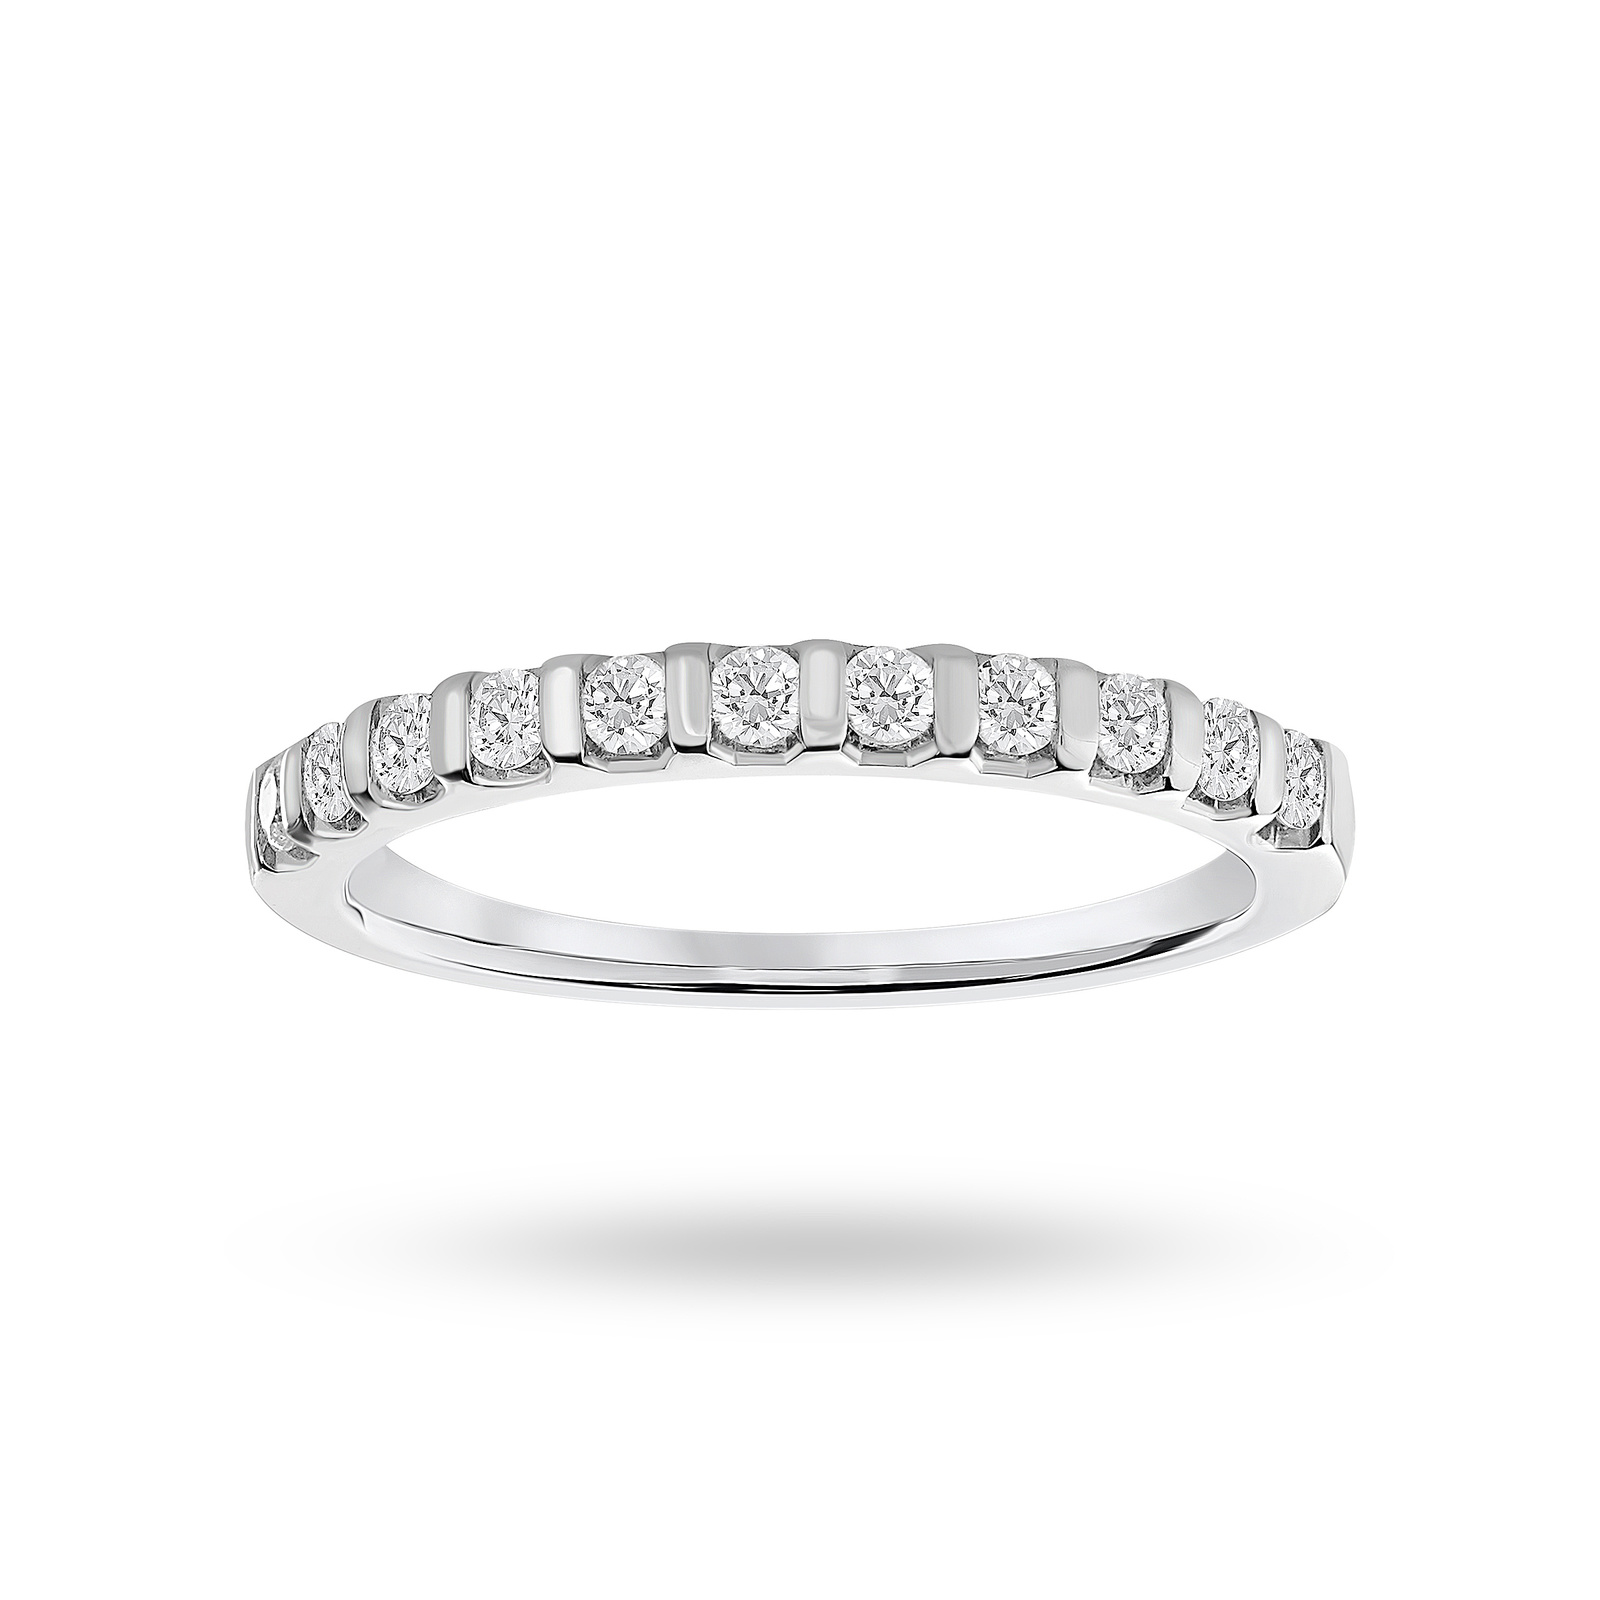 Platinum 0.30 Carat Brilliant Cut Bar Half Eternity Ring